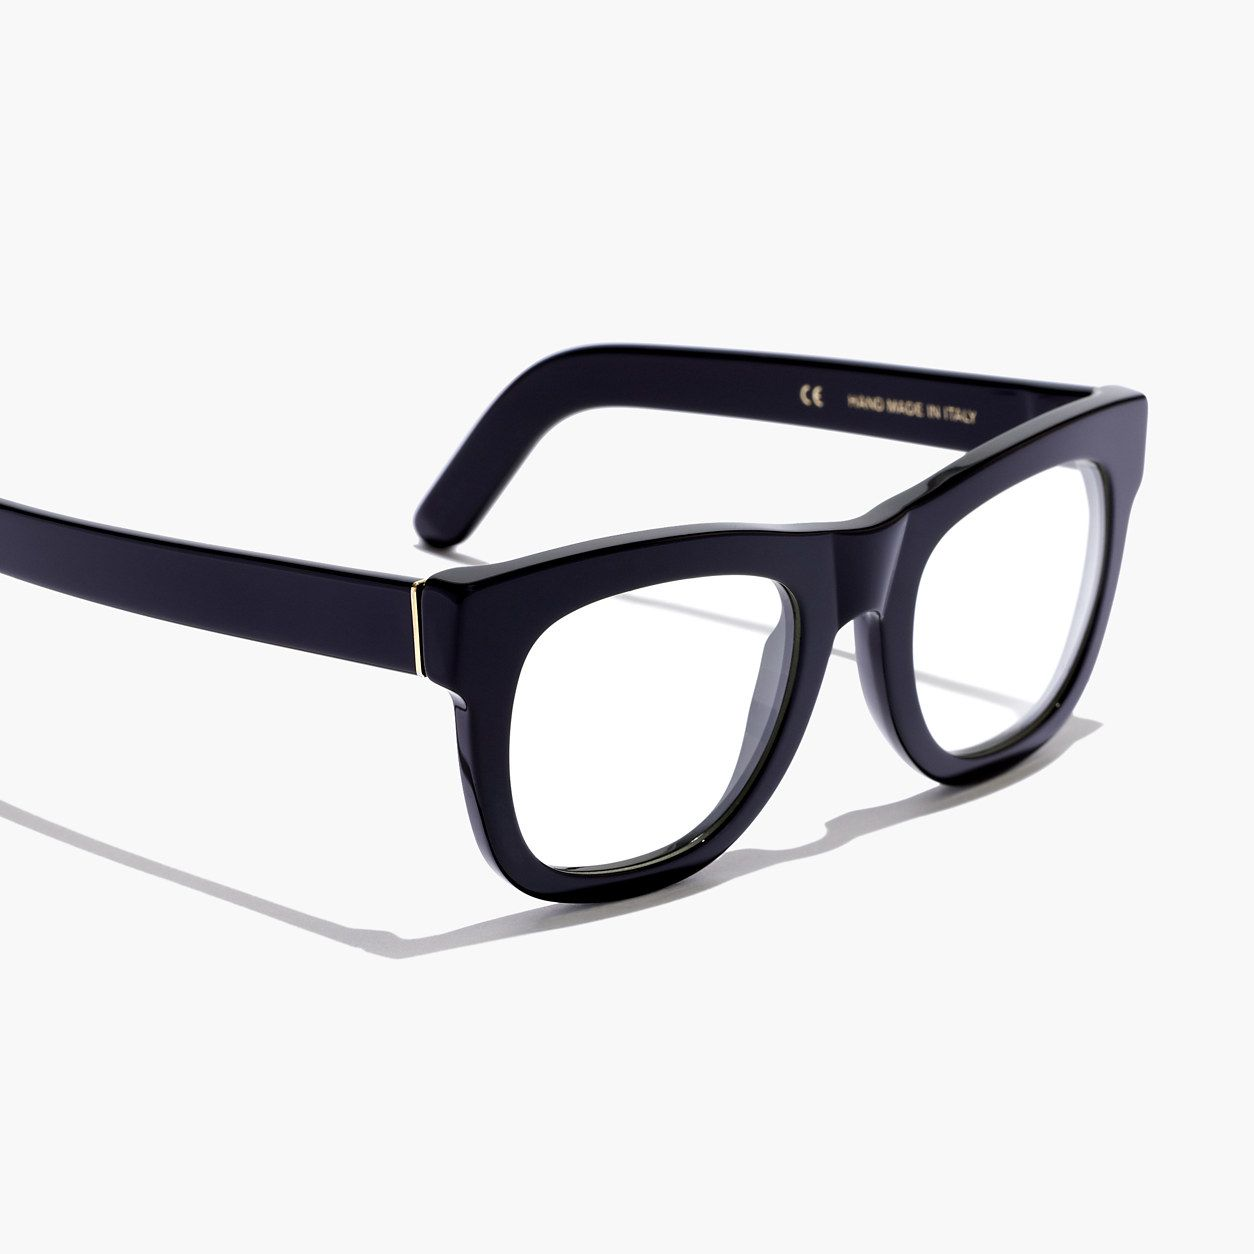 e48cac838fc8 Super™ Ciccio eyeglasses   optic